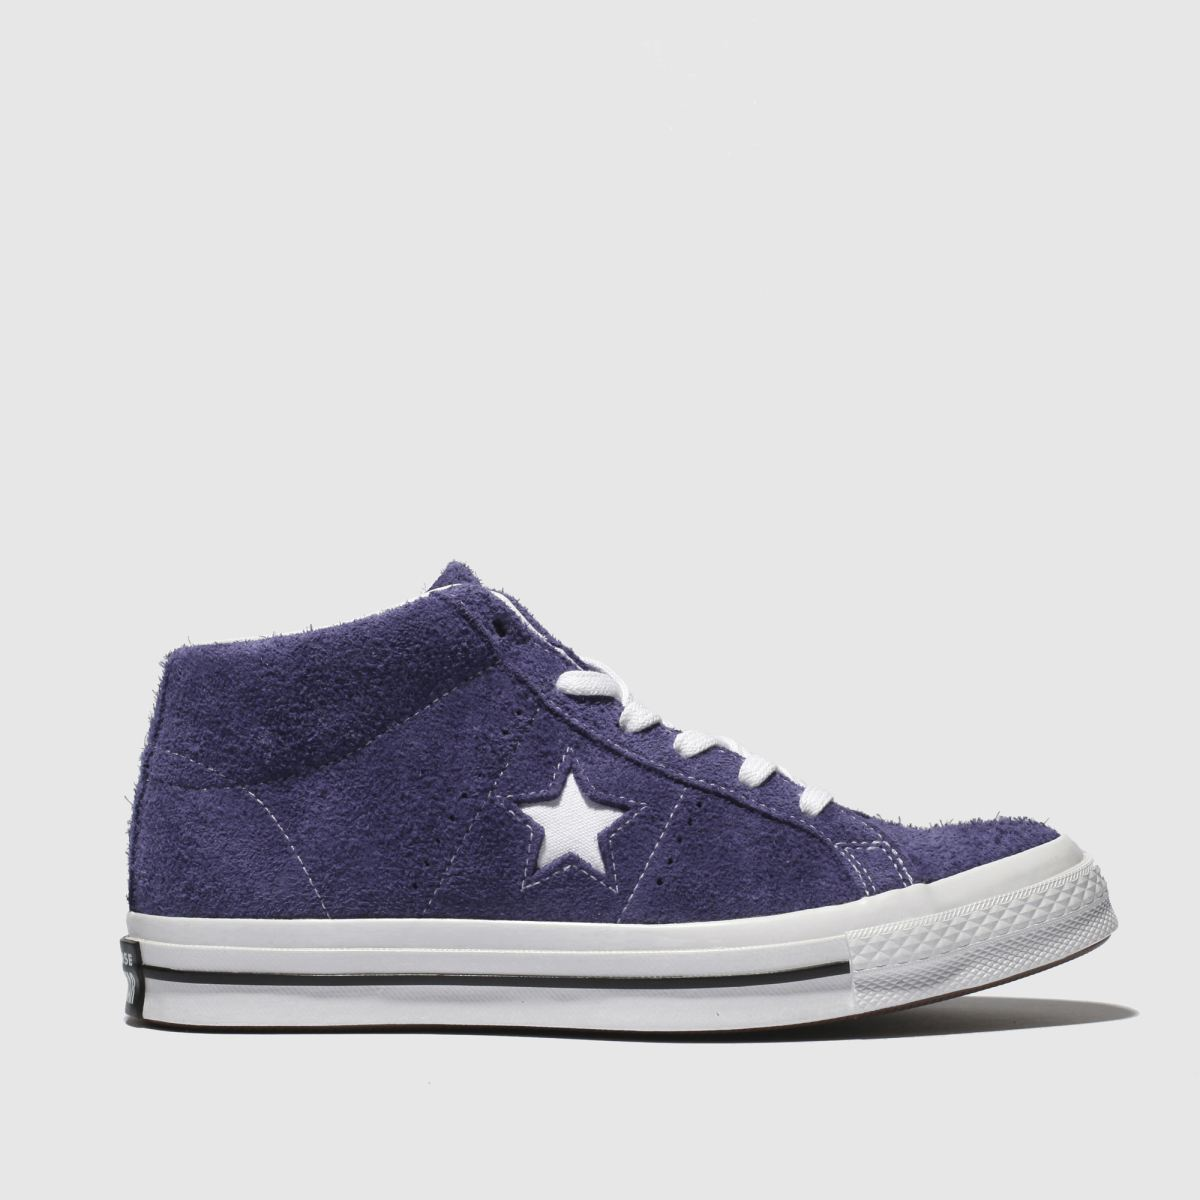 Converse Purple One Star Mid Suede Trainers